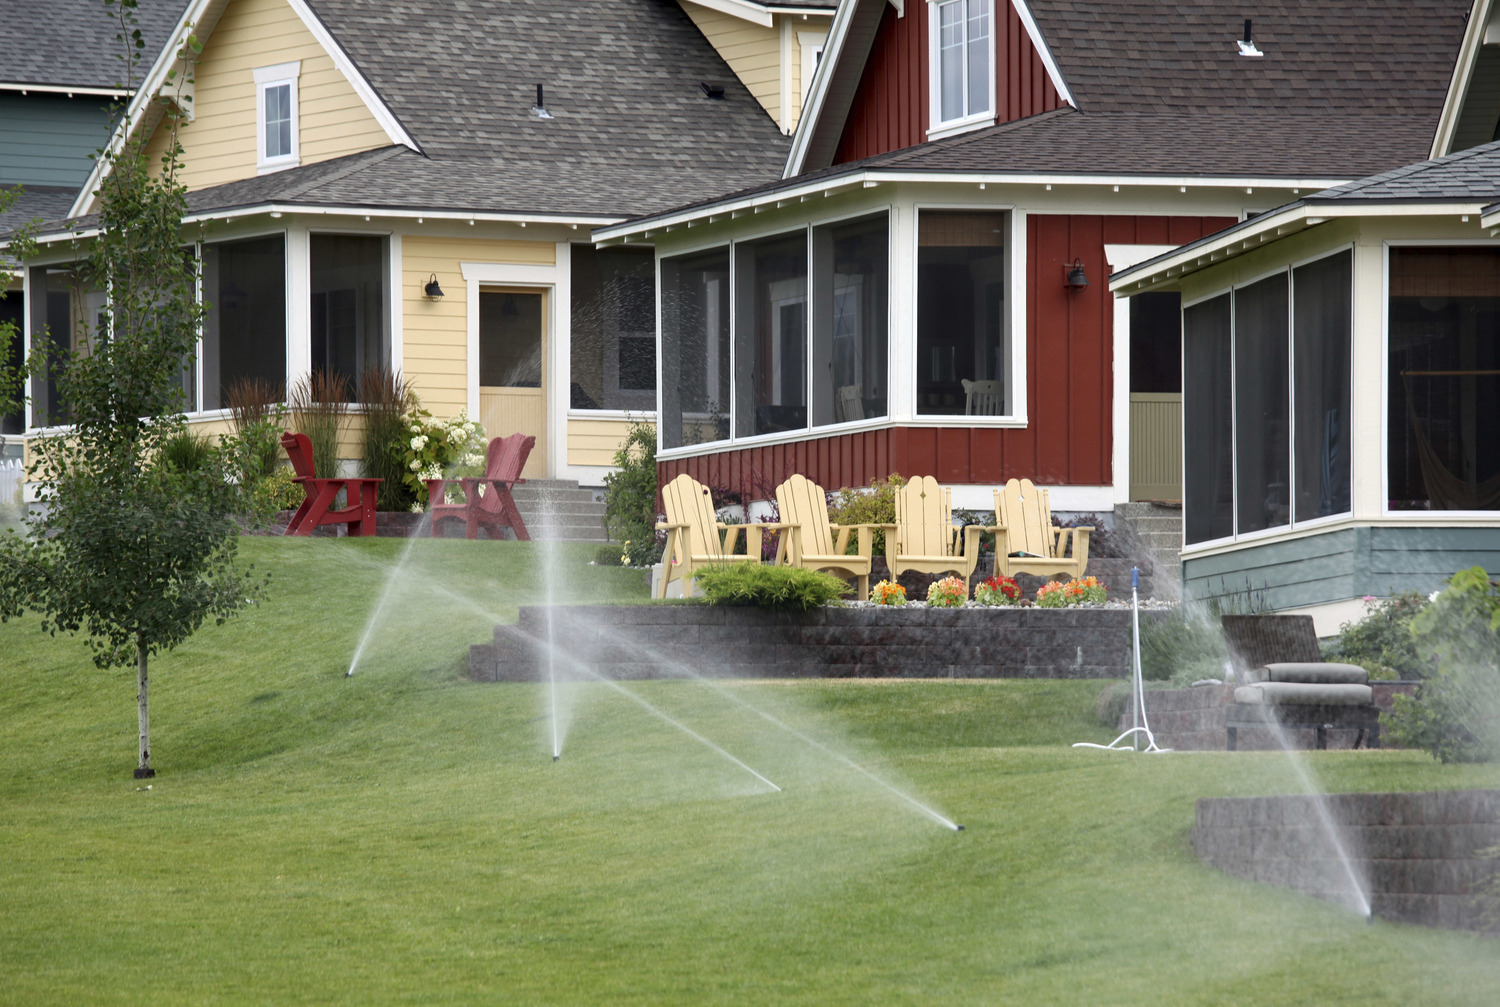 Lake Orion Sprinkler Services